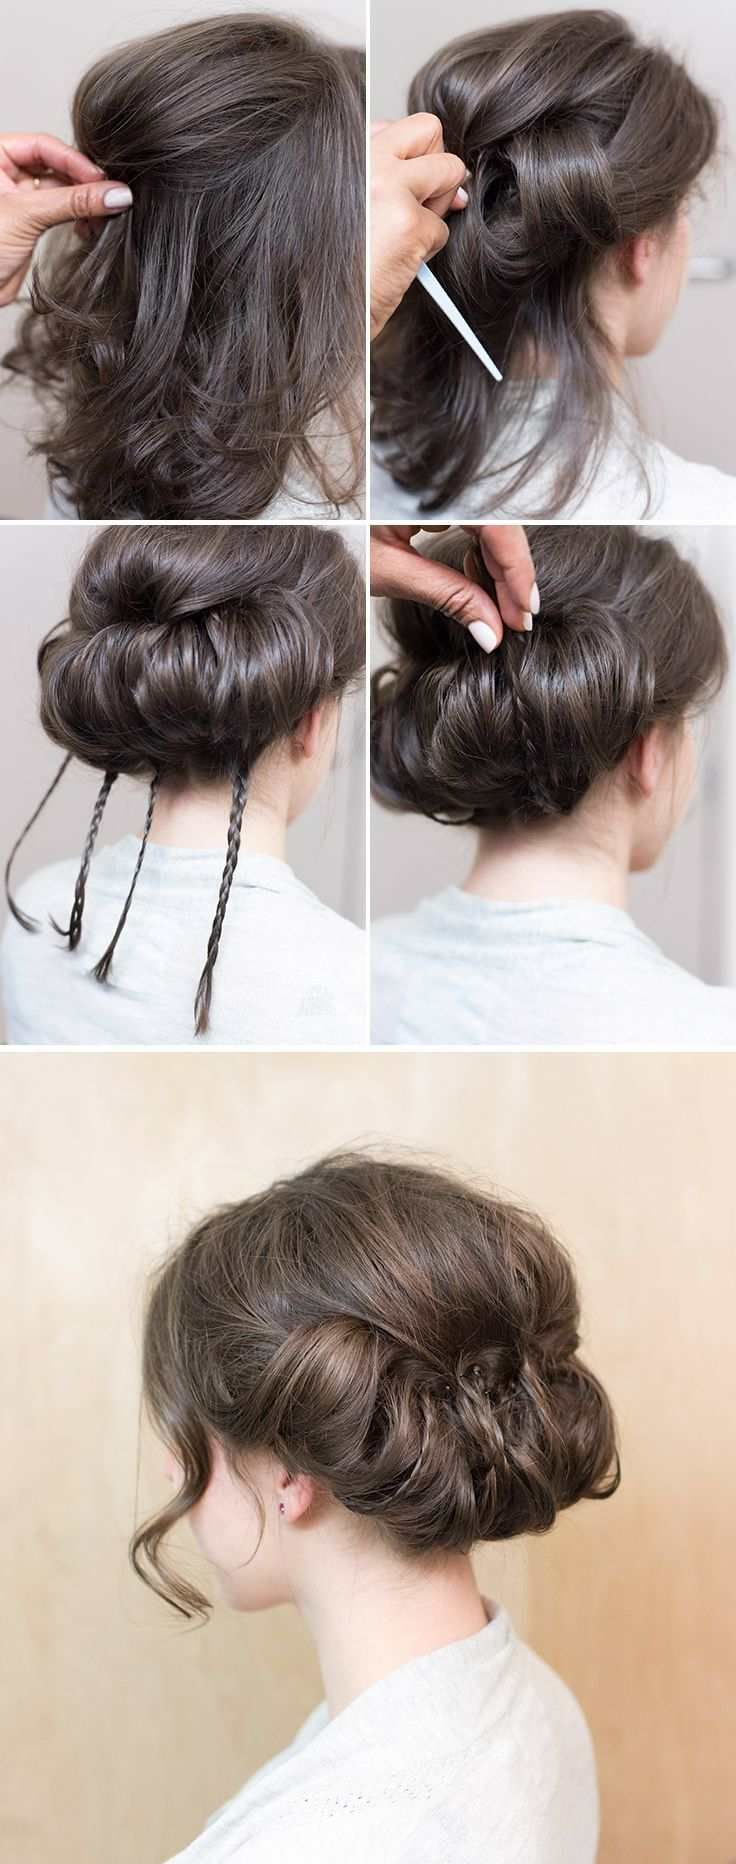 Wedding hairstyles a guide to glamour updo wedding and bun hair